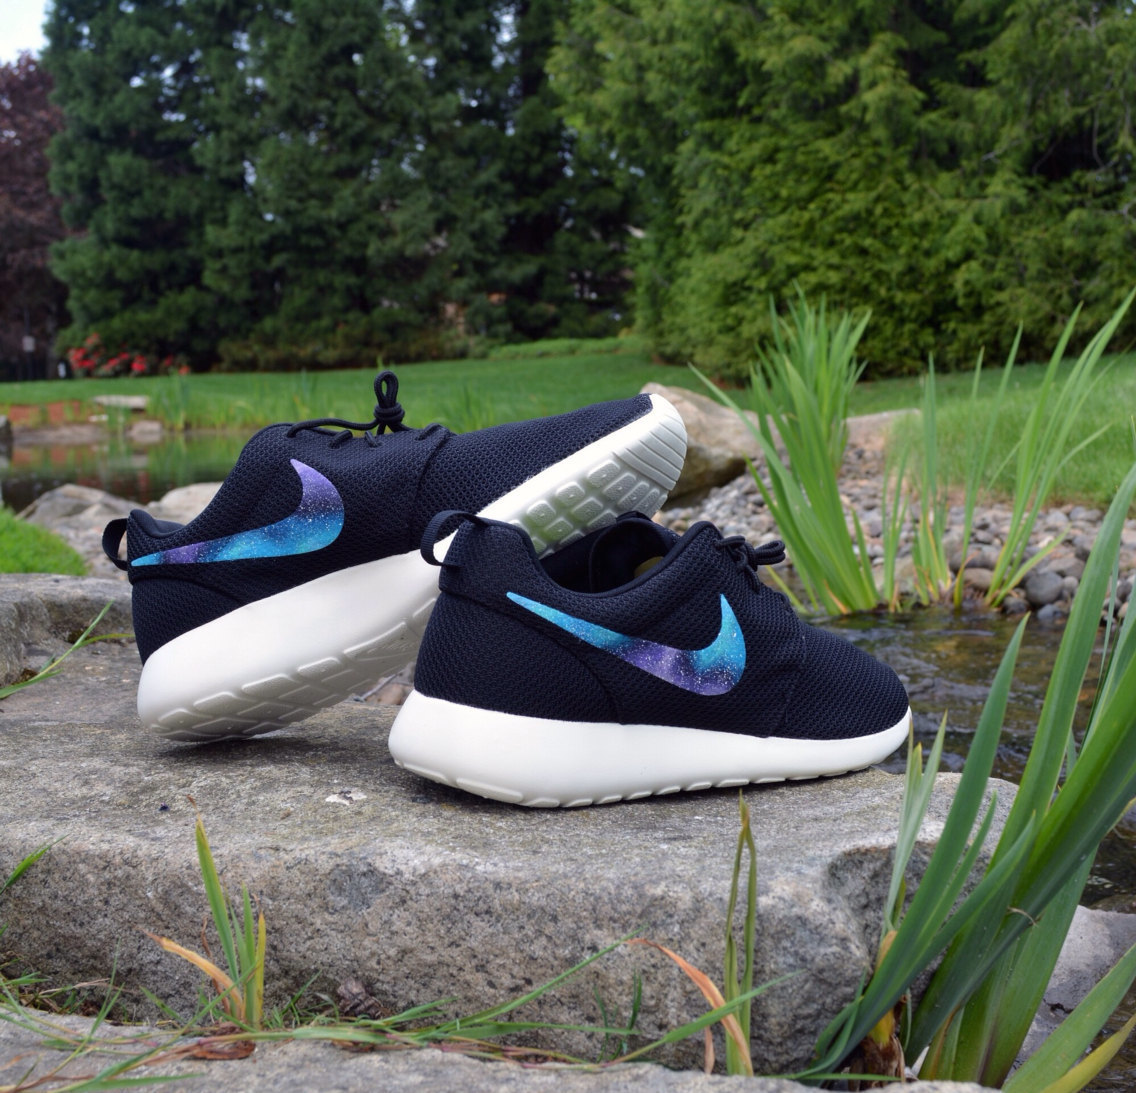 bfdb53389d446 3 Day Sale!!! Custom Outer Space Galaxy Nike Roshe Run !